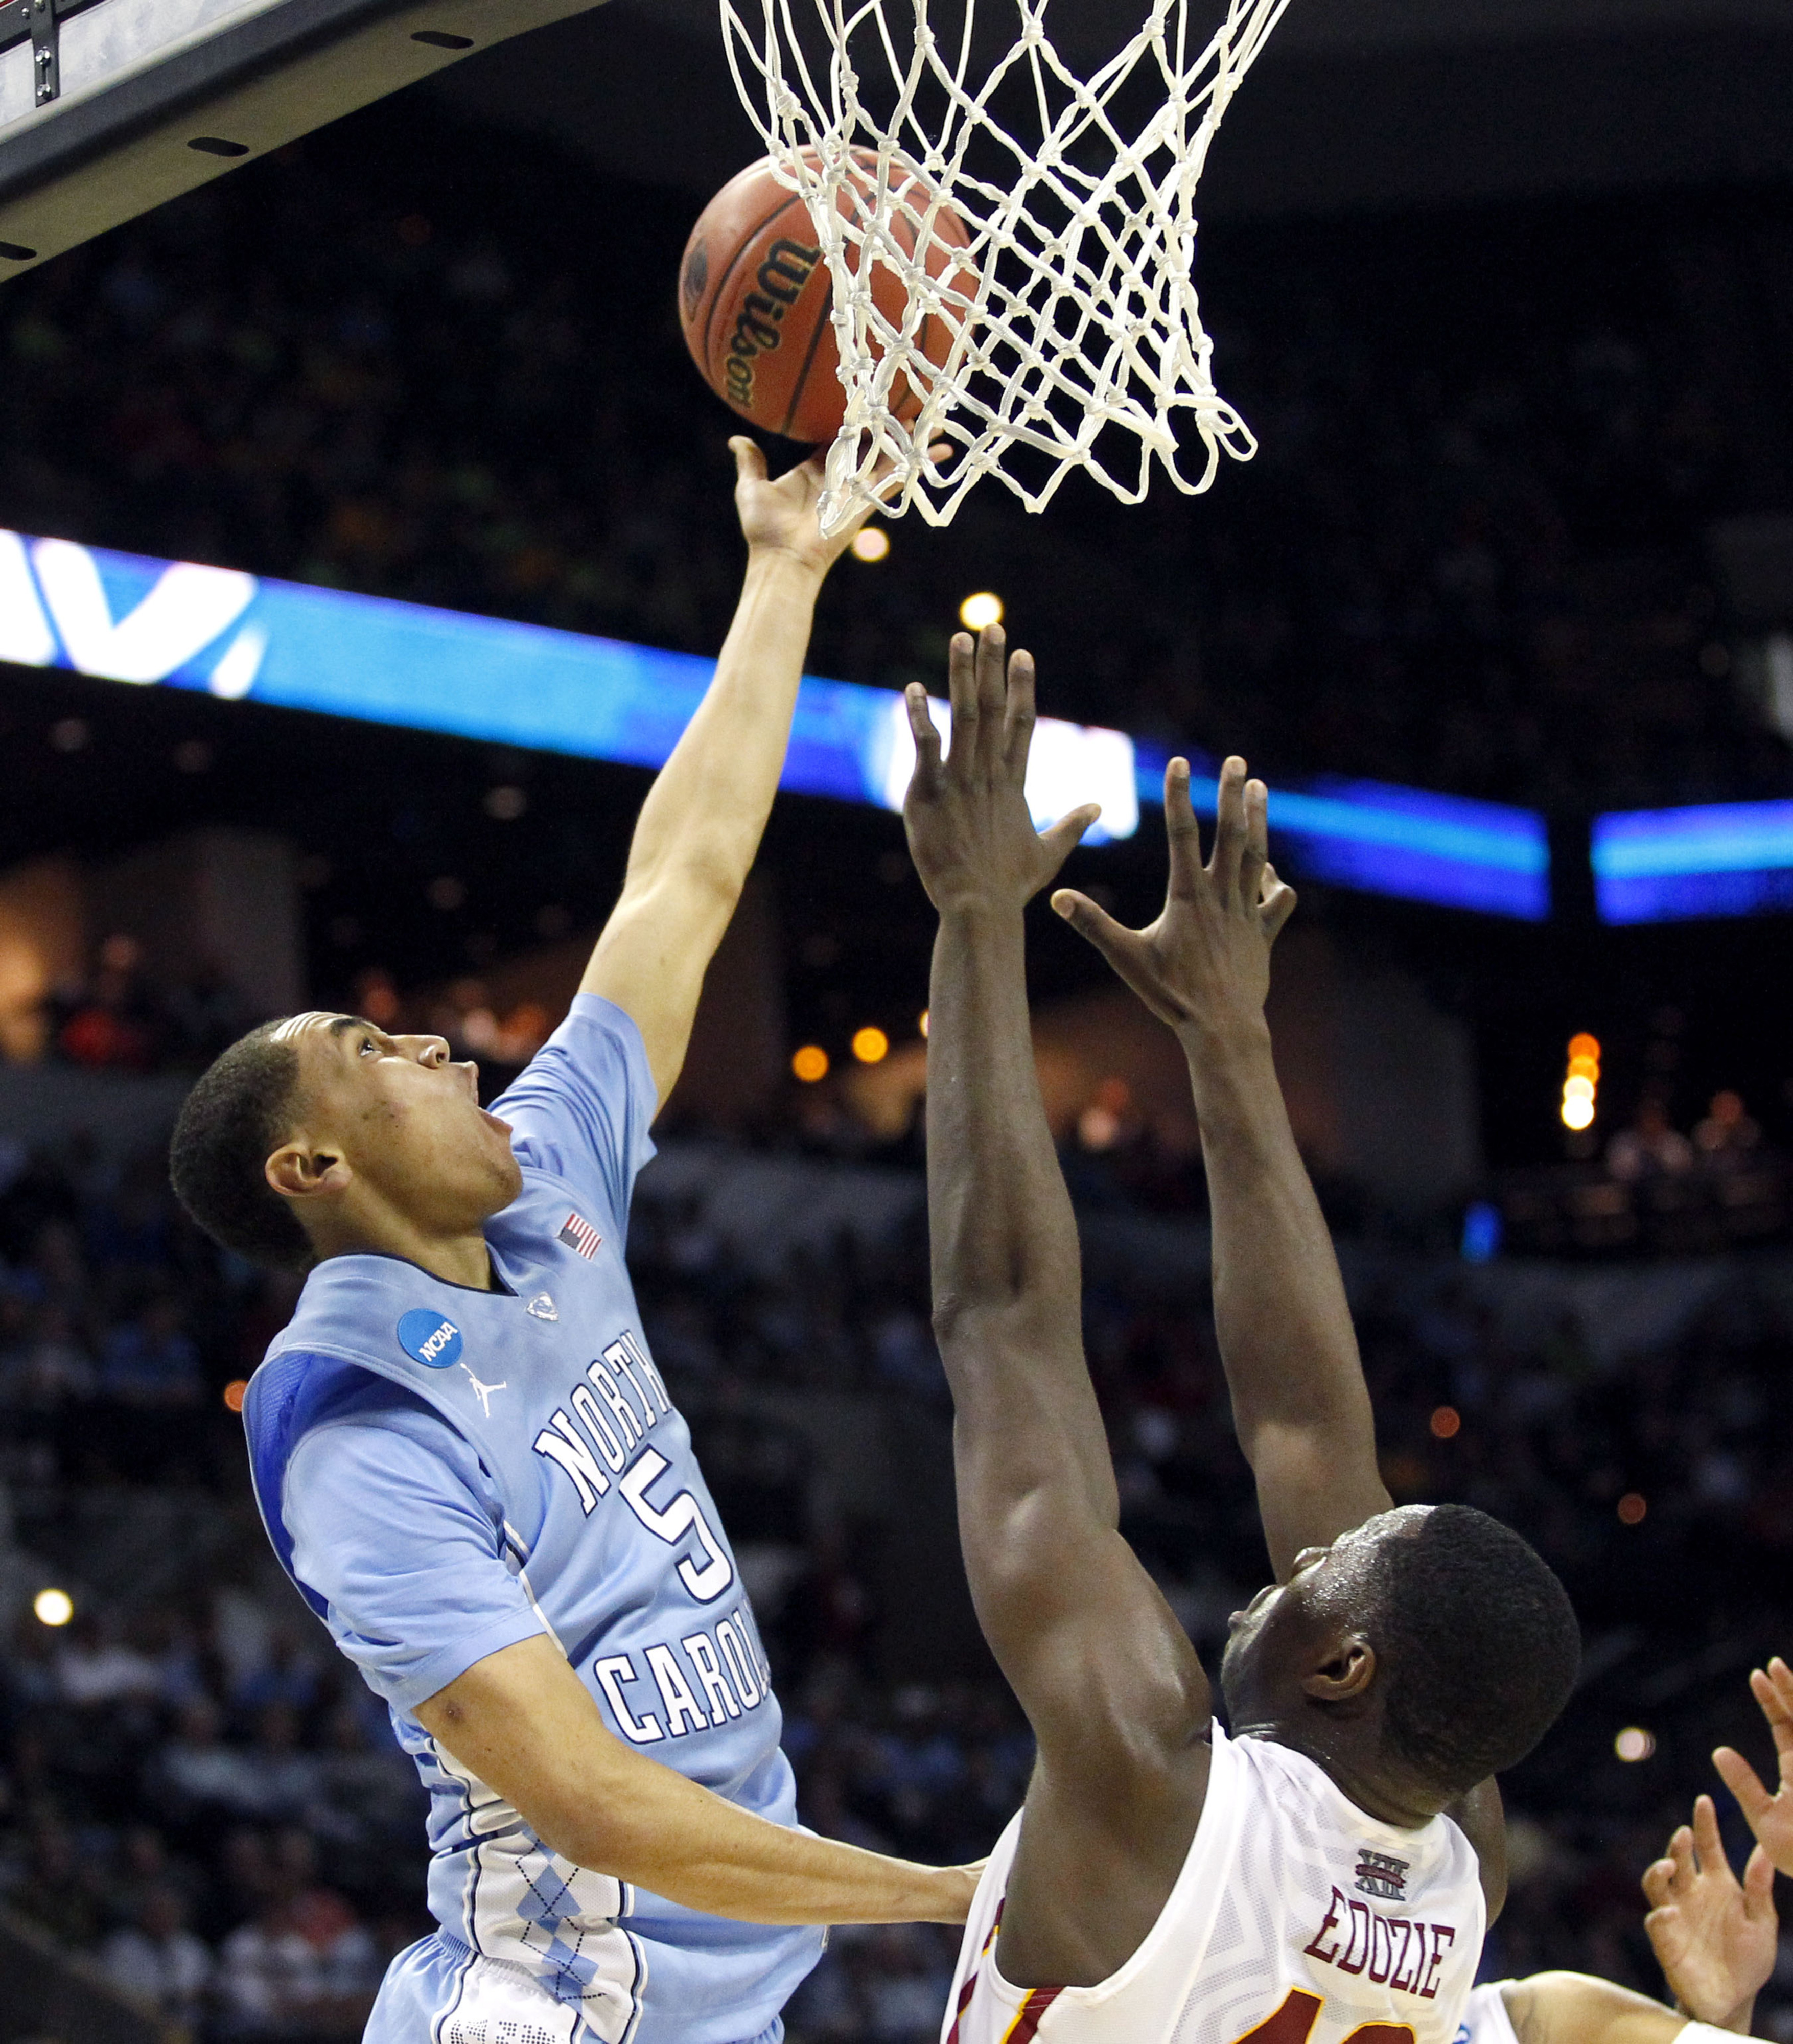 As the Heels' only perimeter threat, Marcus Paige is the big key for their season.